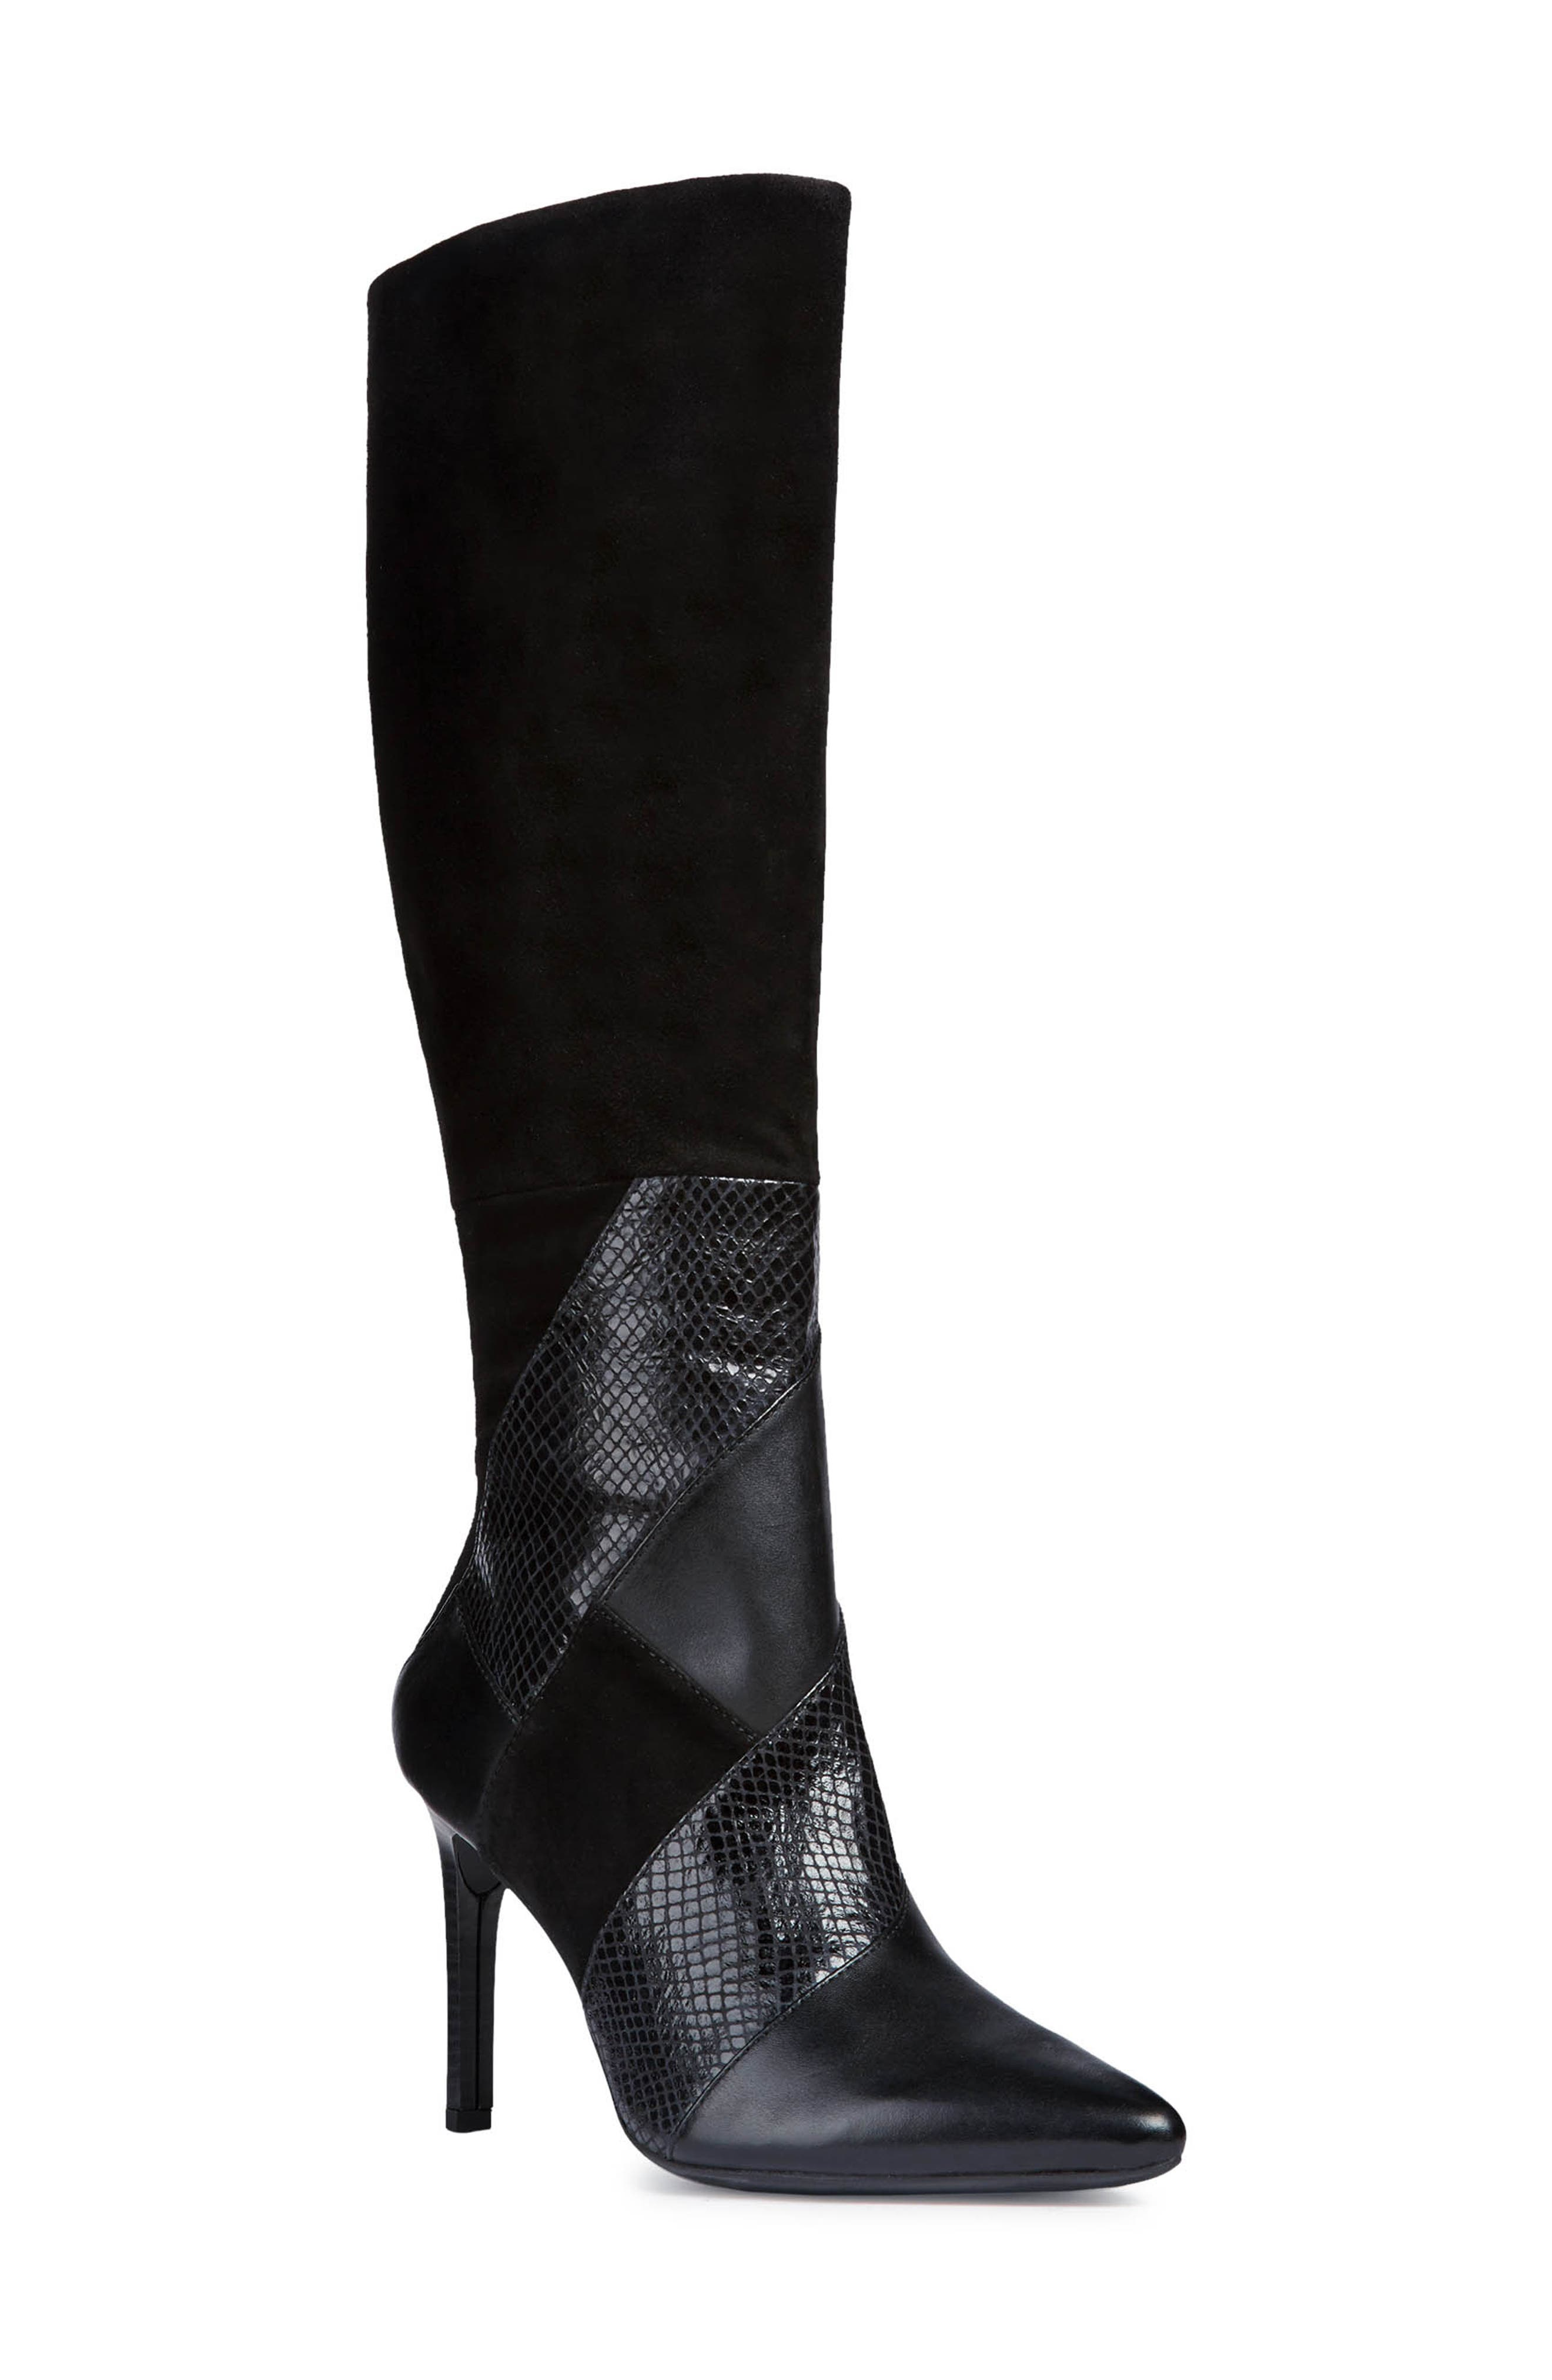 GEOX, Faviola Knee High Boot, Main thumbnail 1, color, BLACK LEATHER